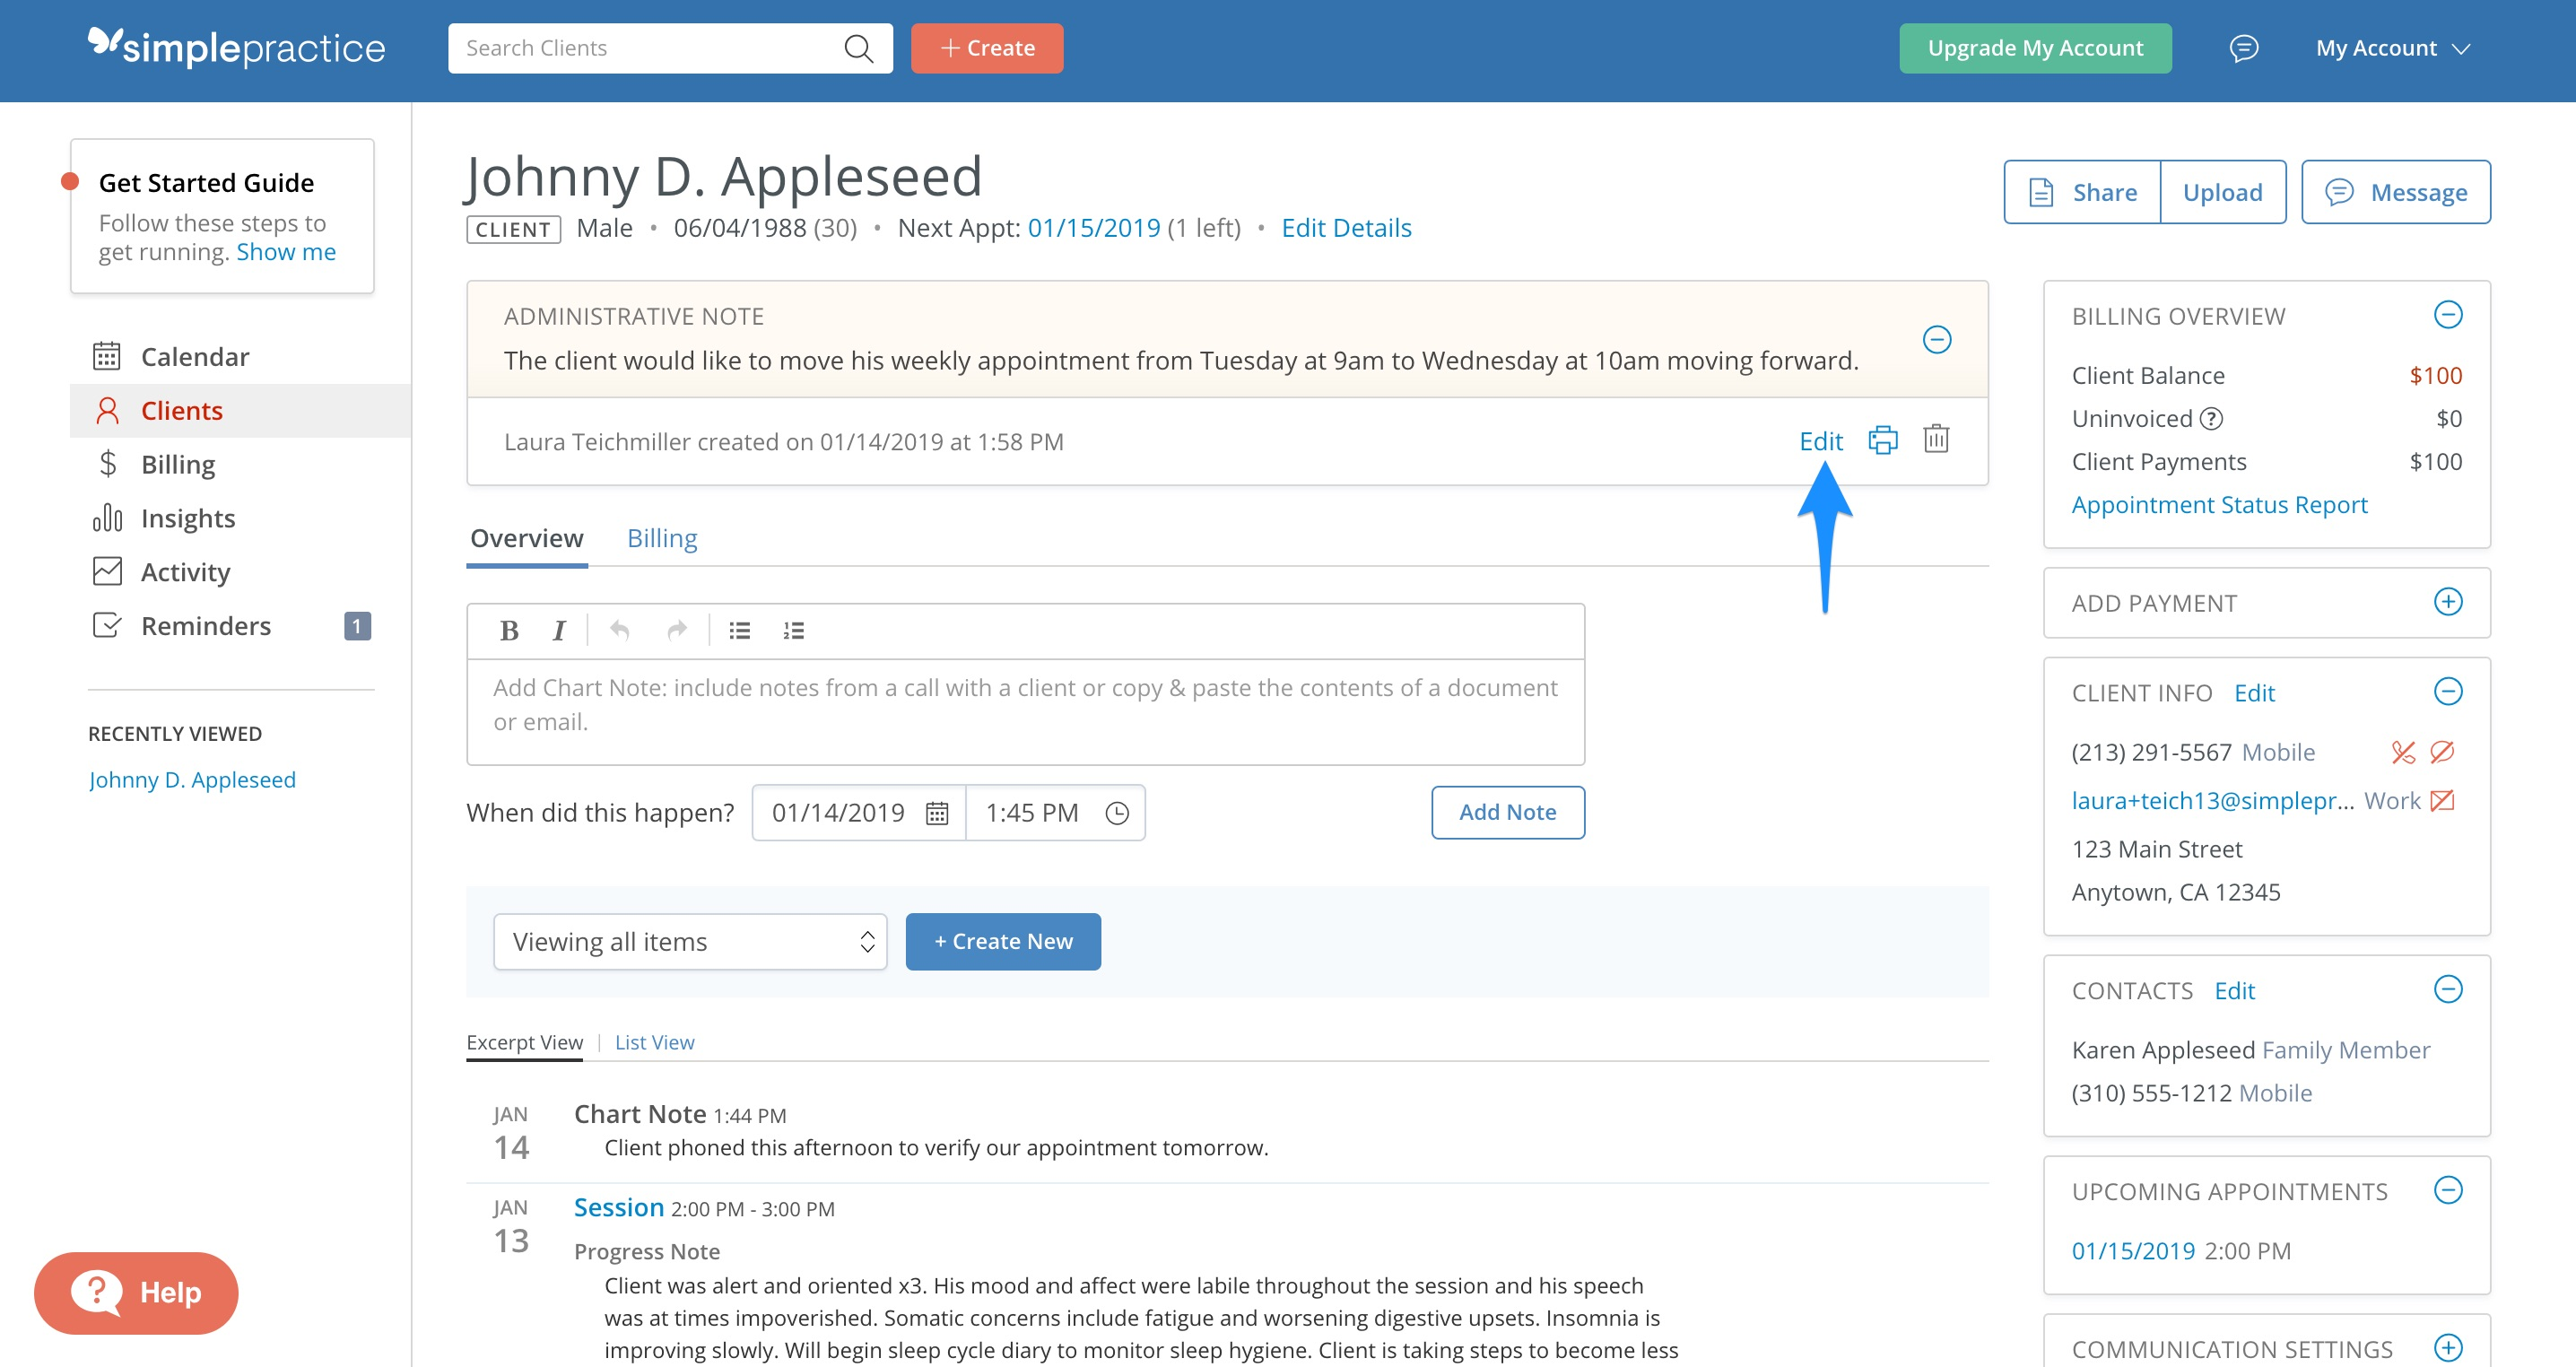 Click the blue Edit link to edit your administrative note